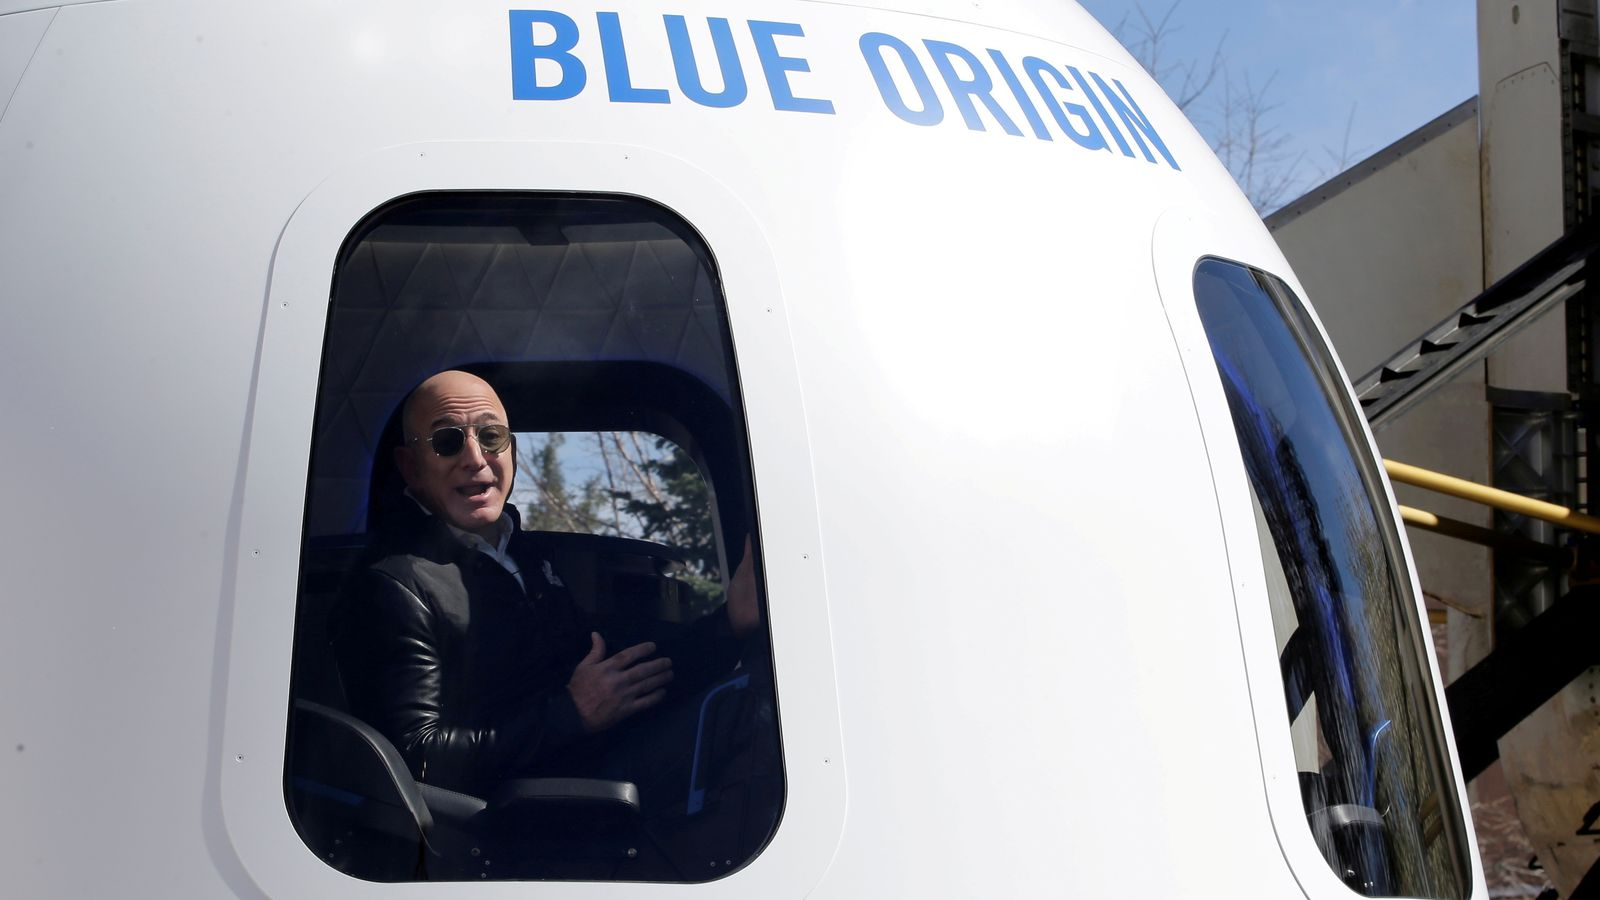 Jeff Bezos: Amazon founder 'excited not nervous' about flight to edge of space